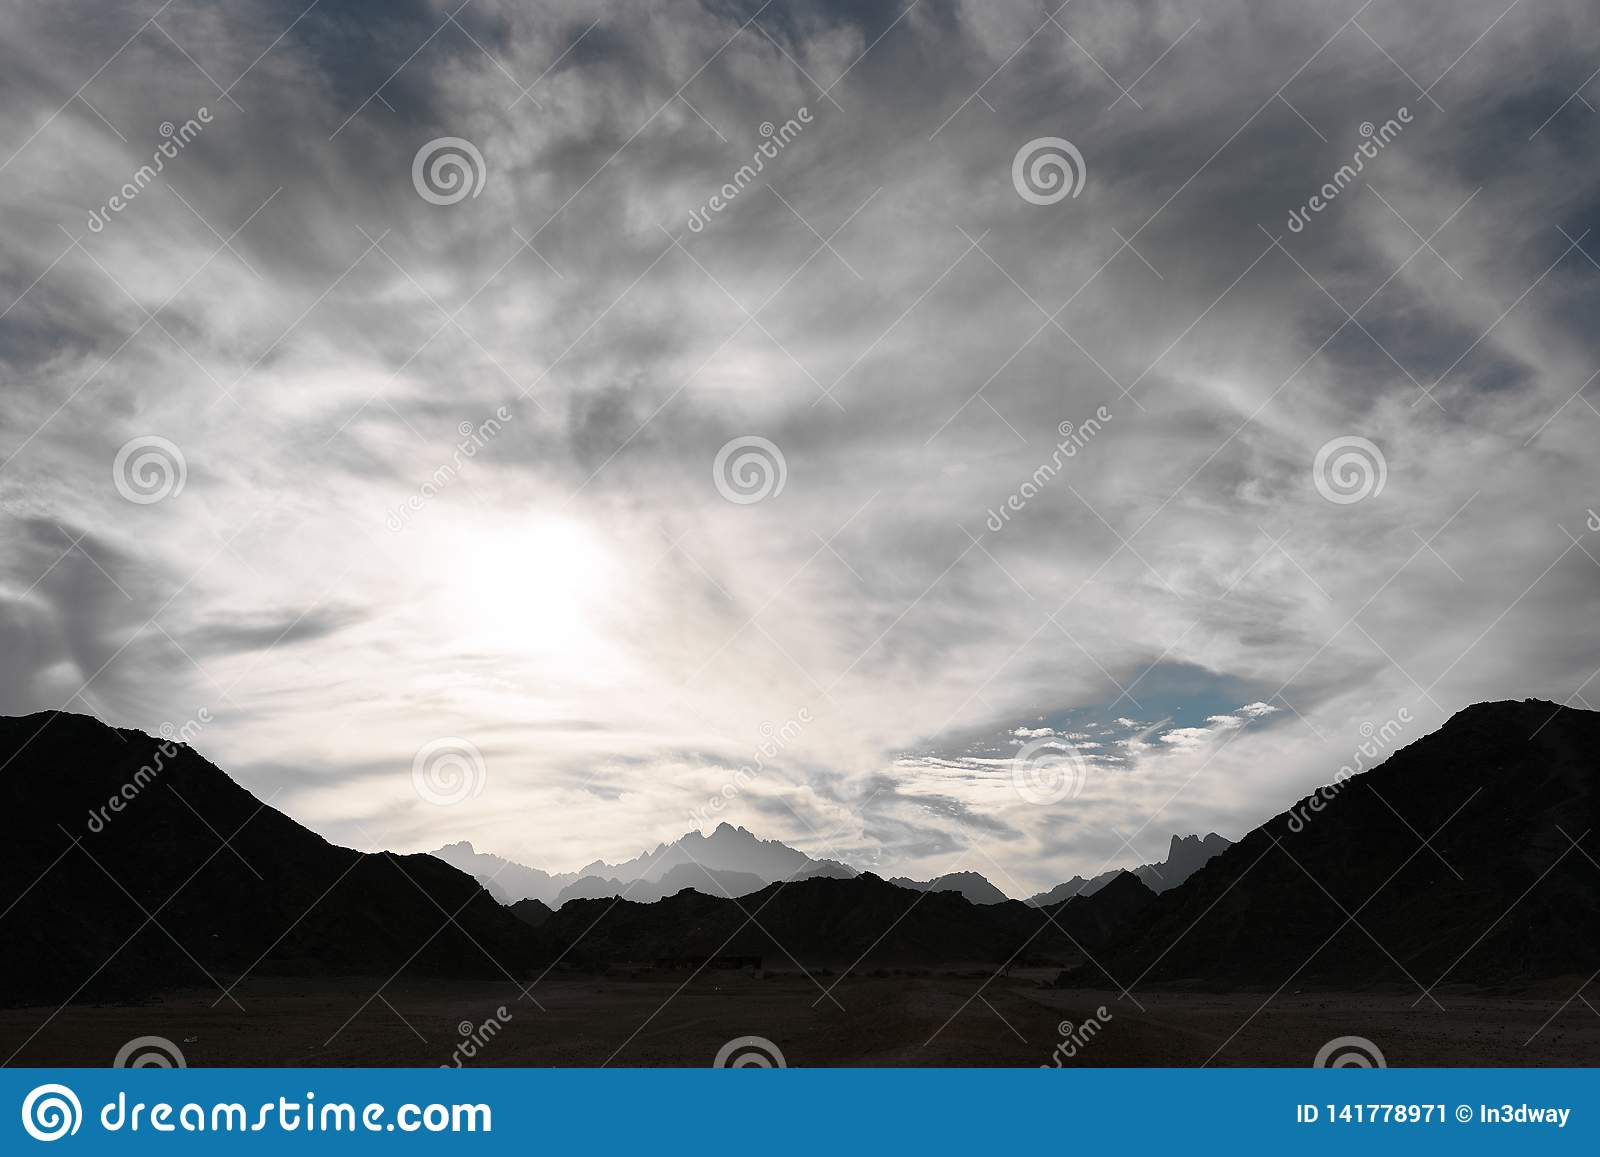 Cloudy sky over the mountains